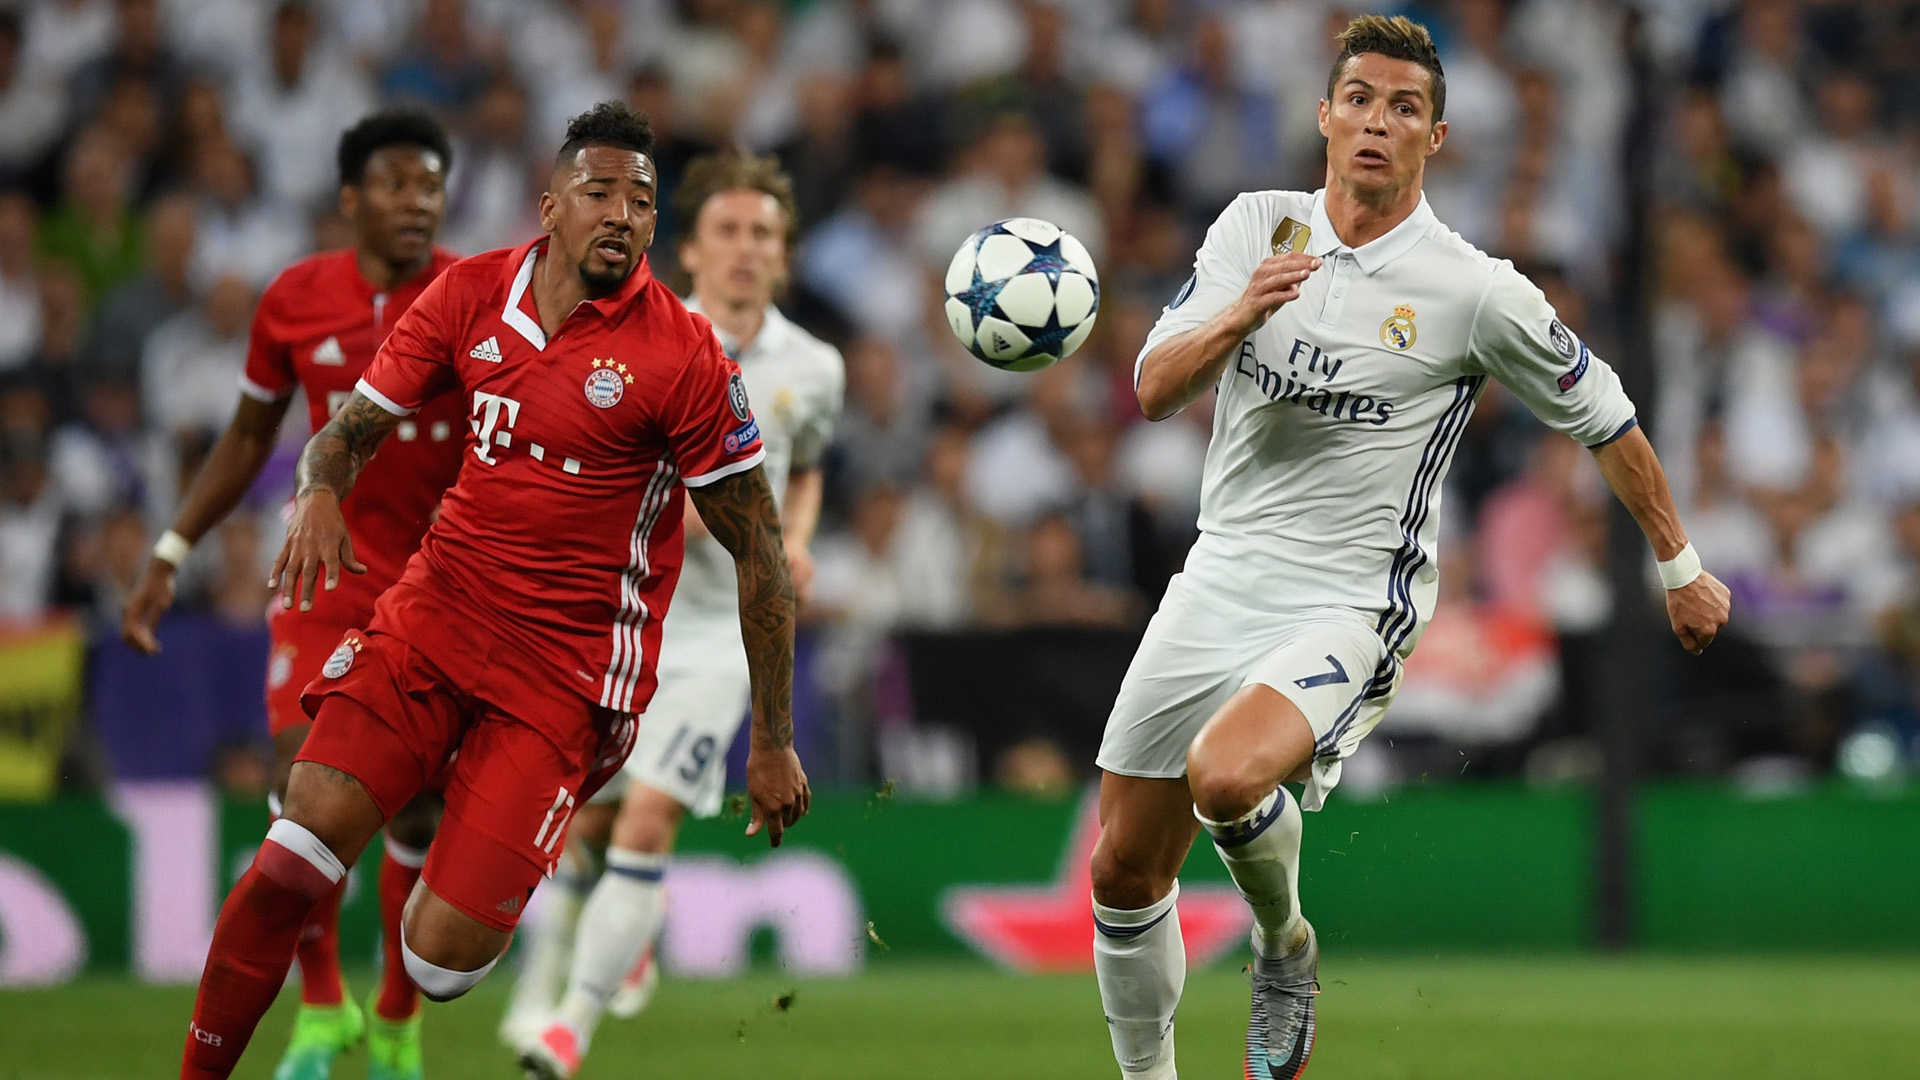 bayern münchen real madrid champions league